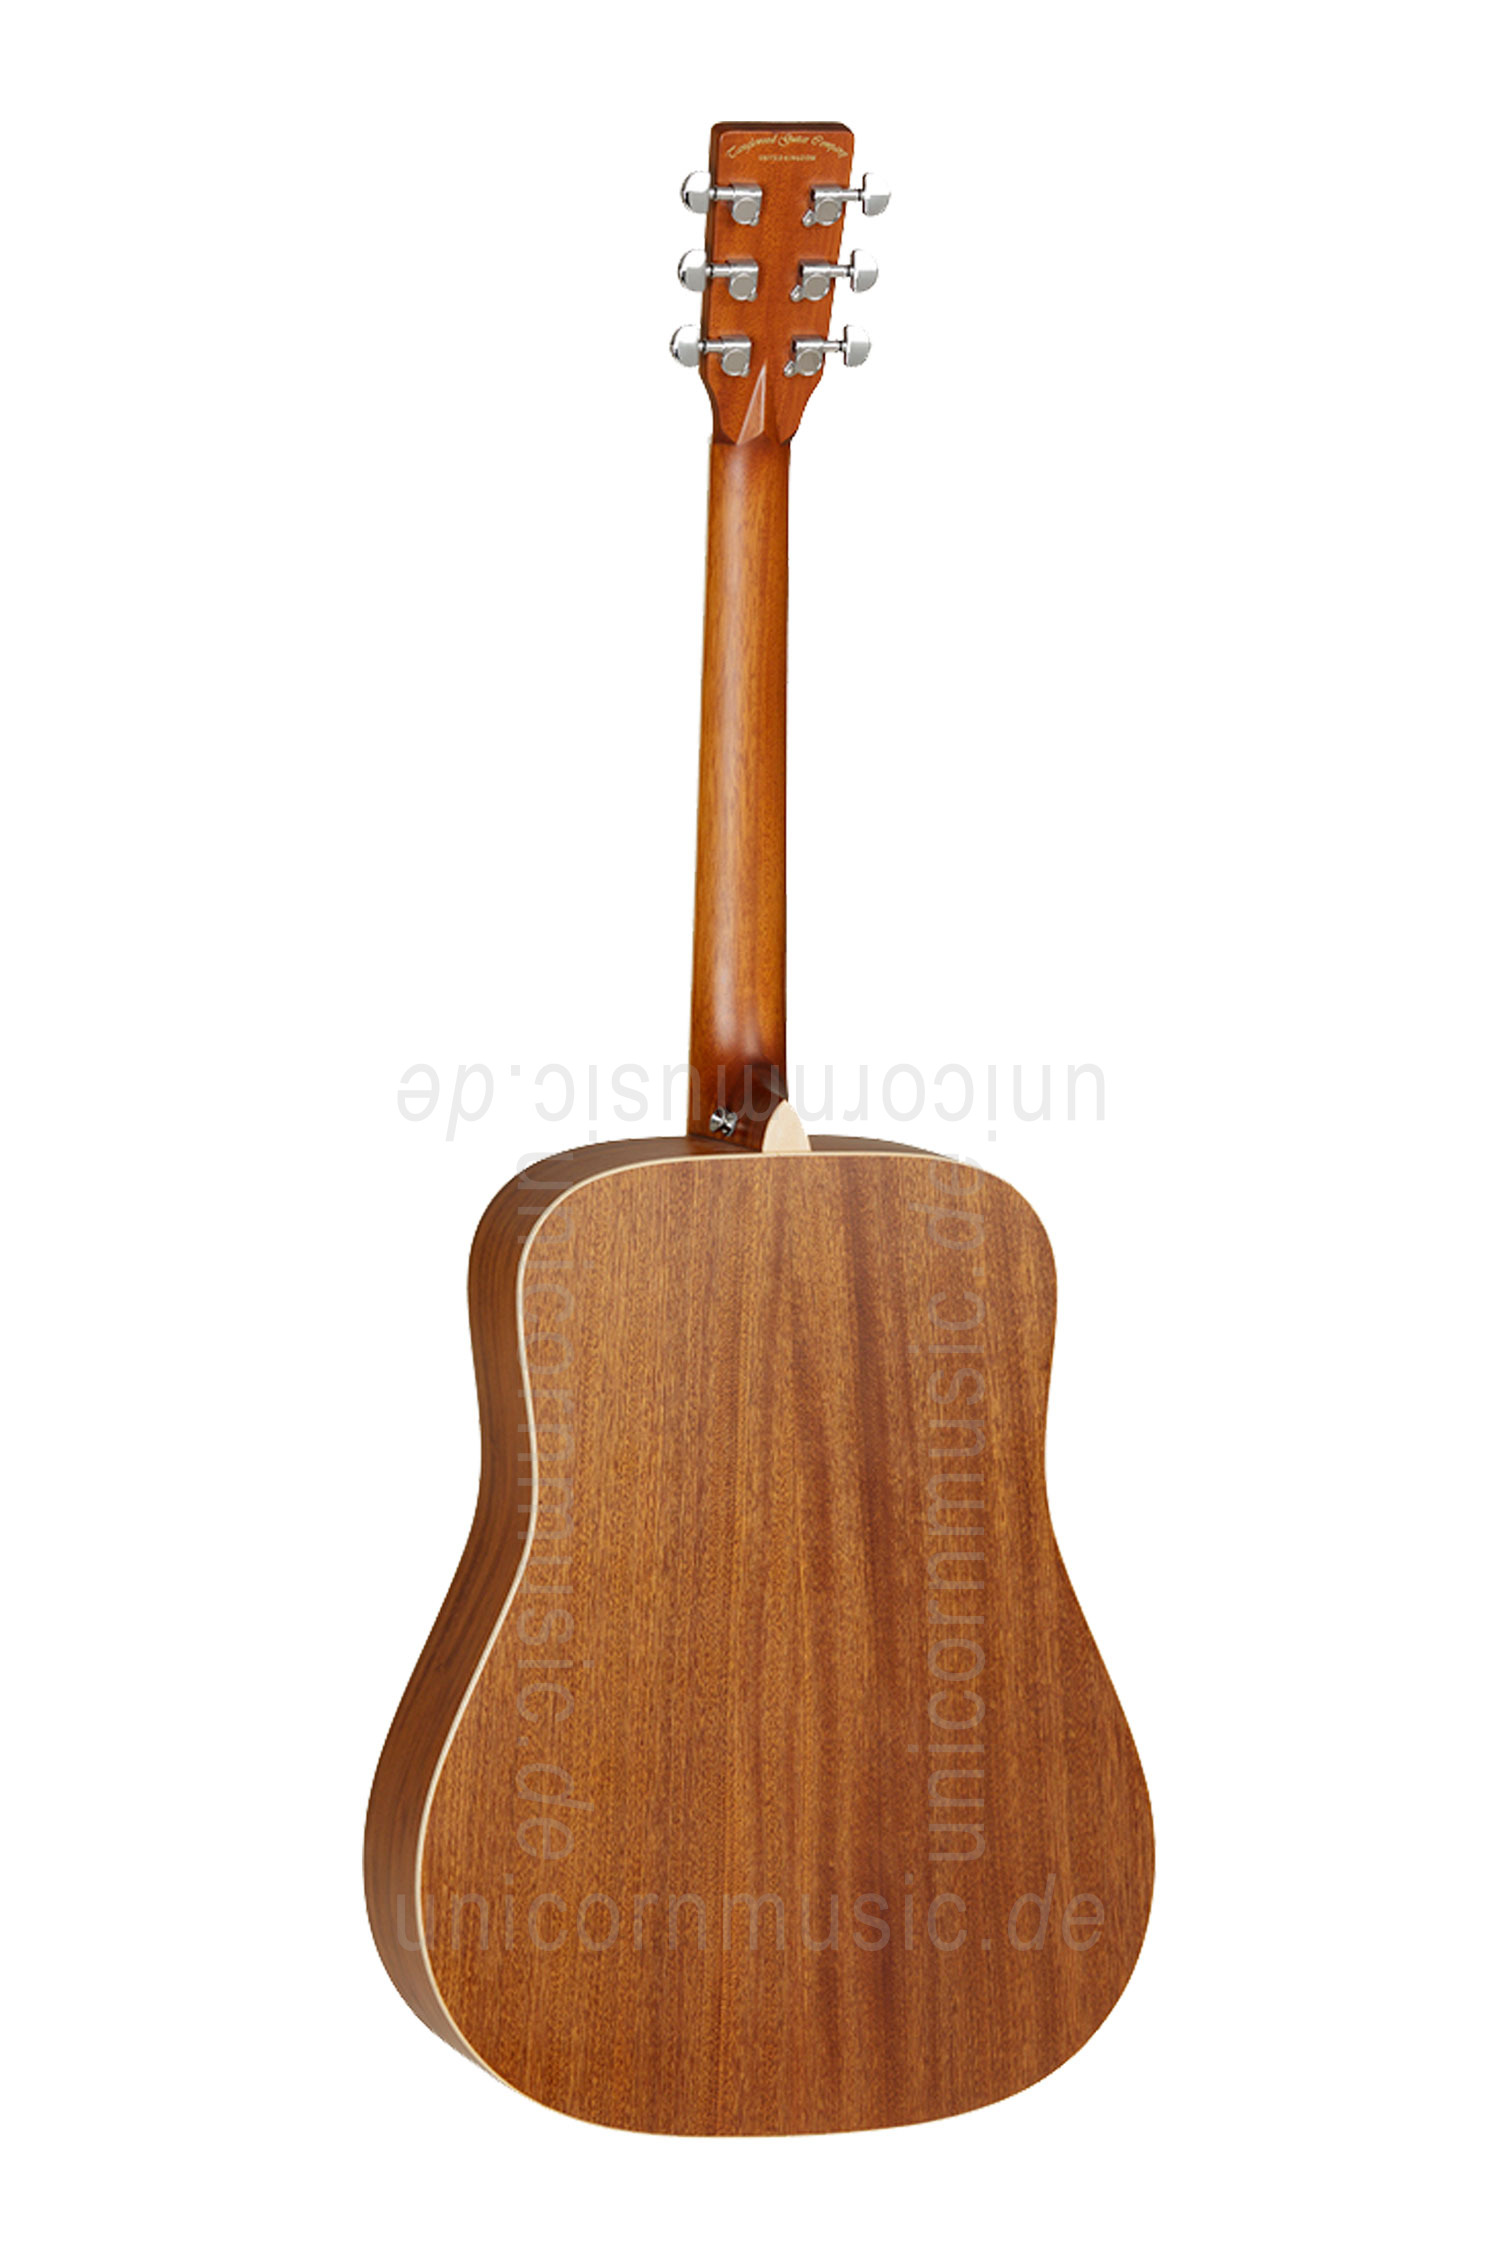 to article description / price Acoustic Guitar TANGLEWOOD X15 NS - Sundance Series - Dreadnought - all solid